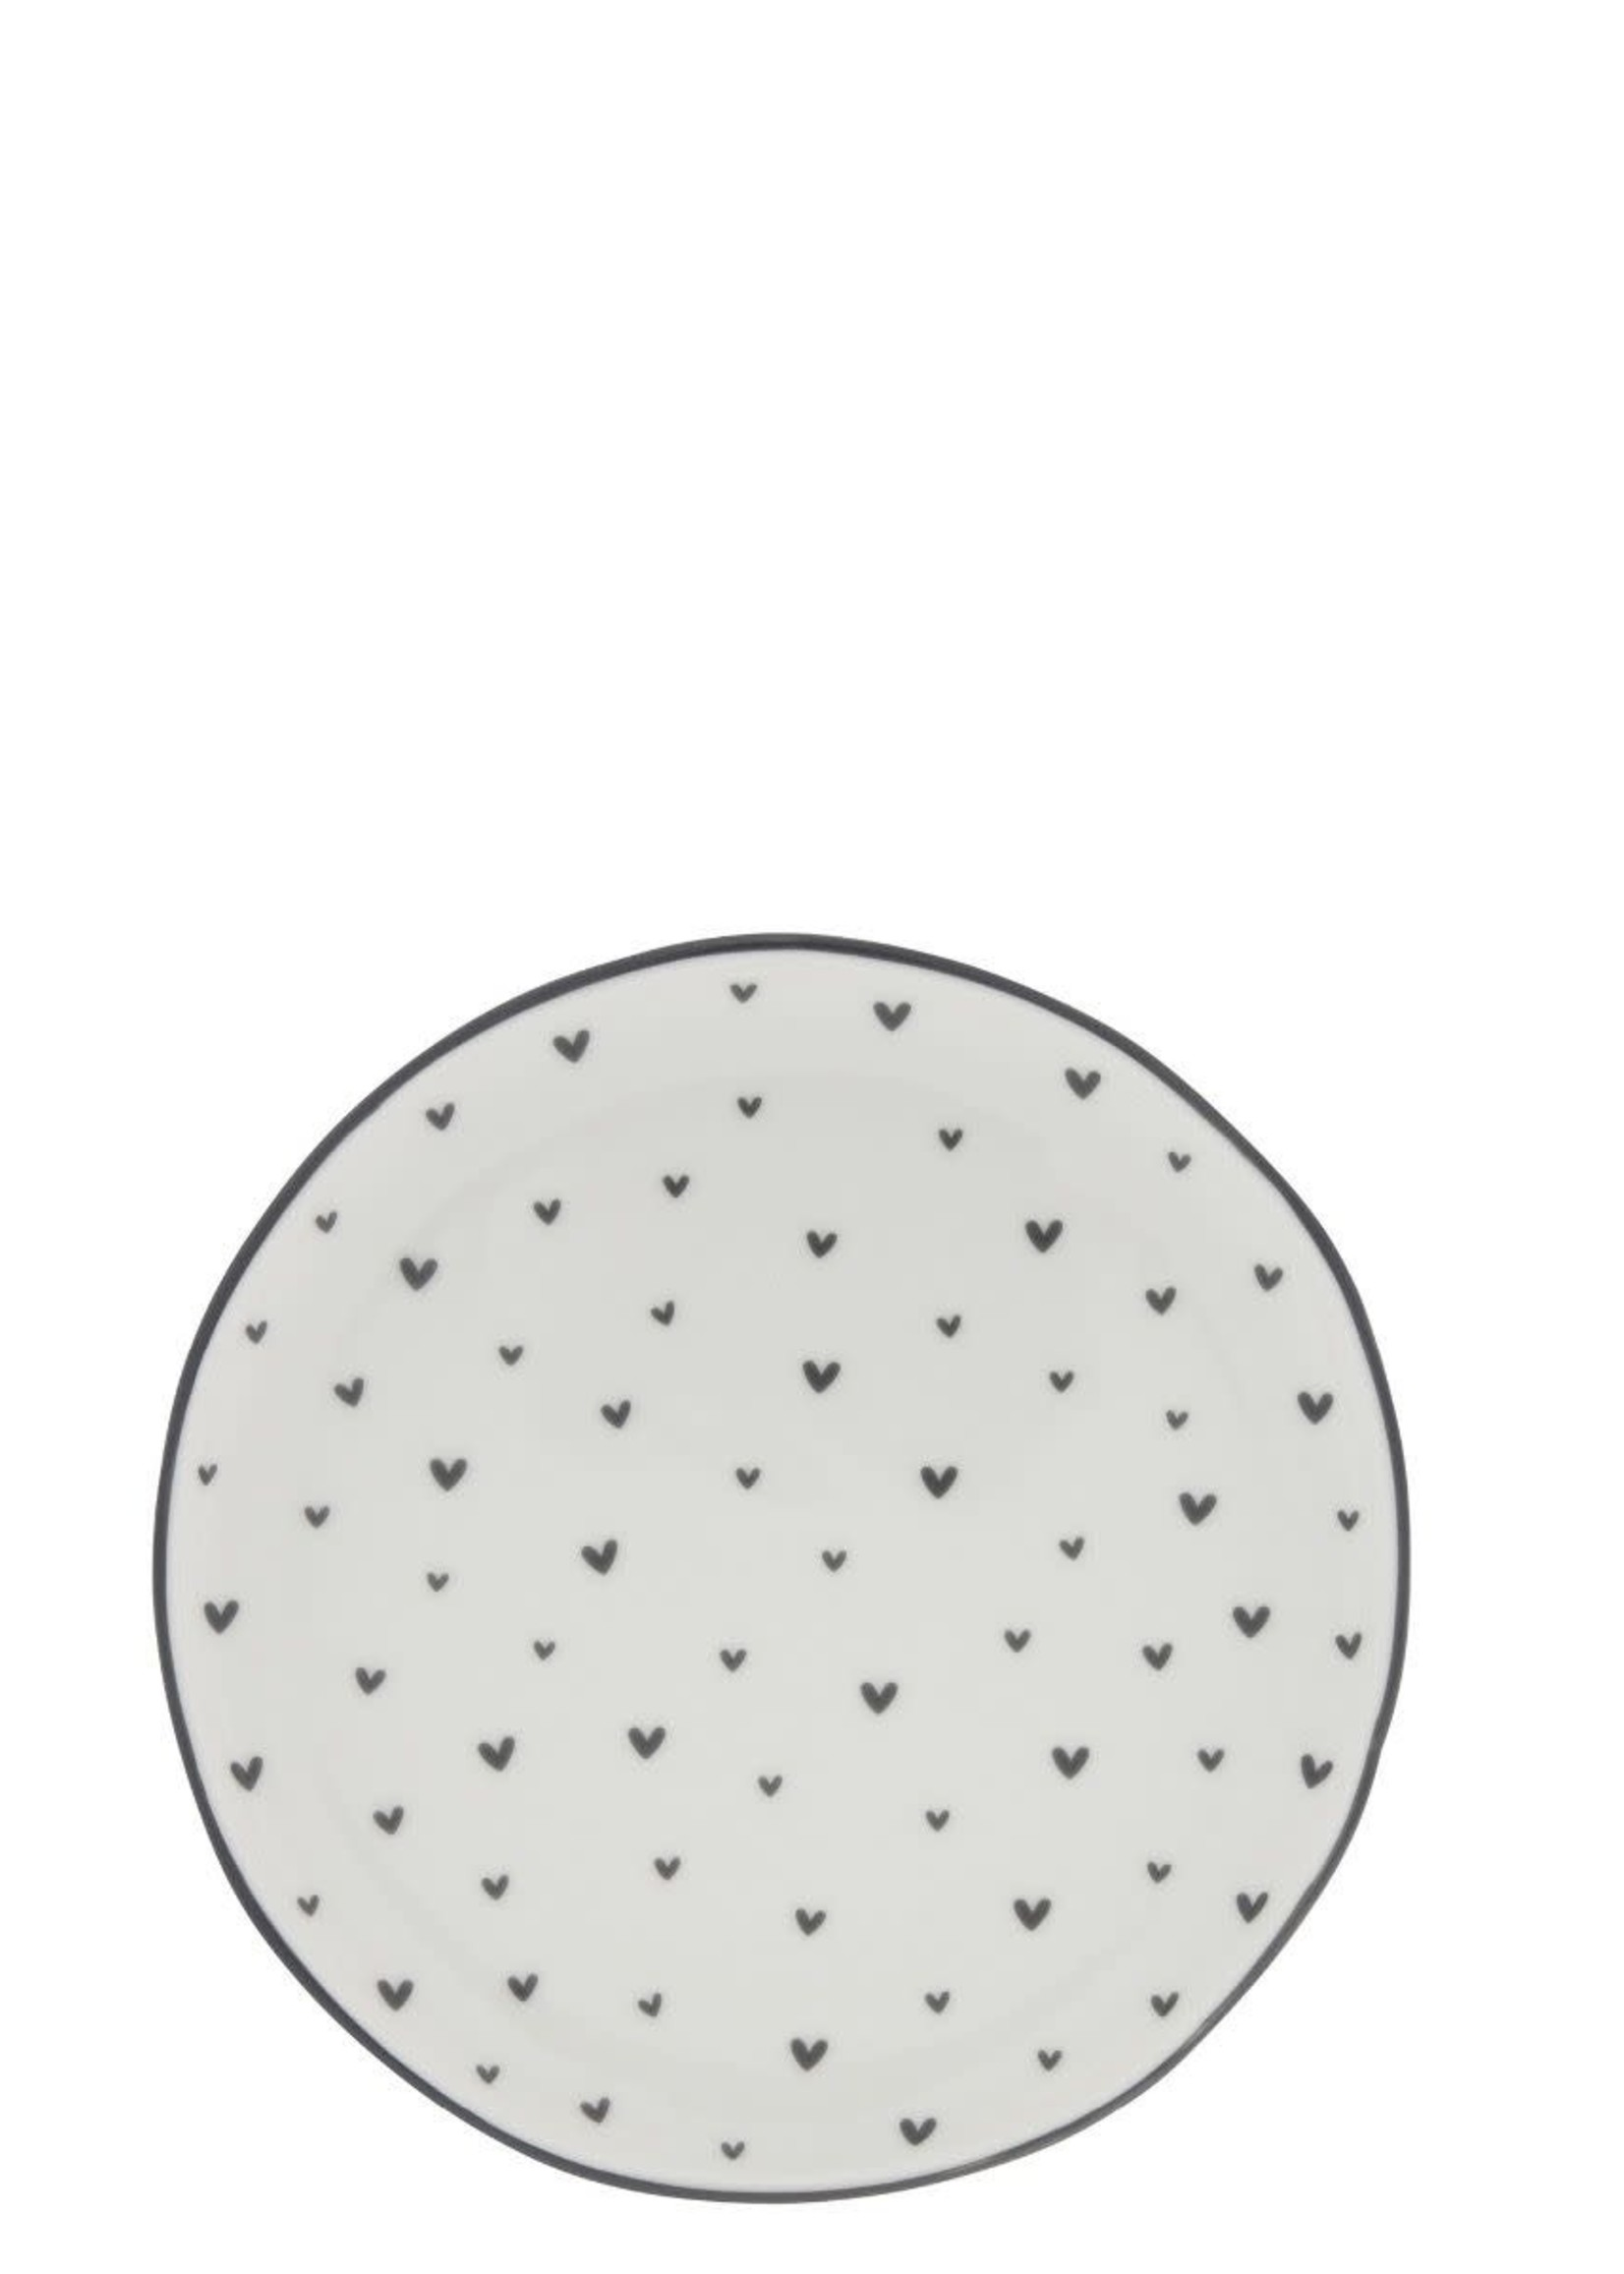 BASTION COLLECTIONS Cake plate 16cm white/ hearts in black